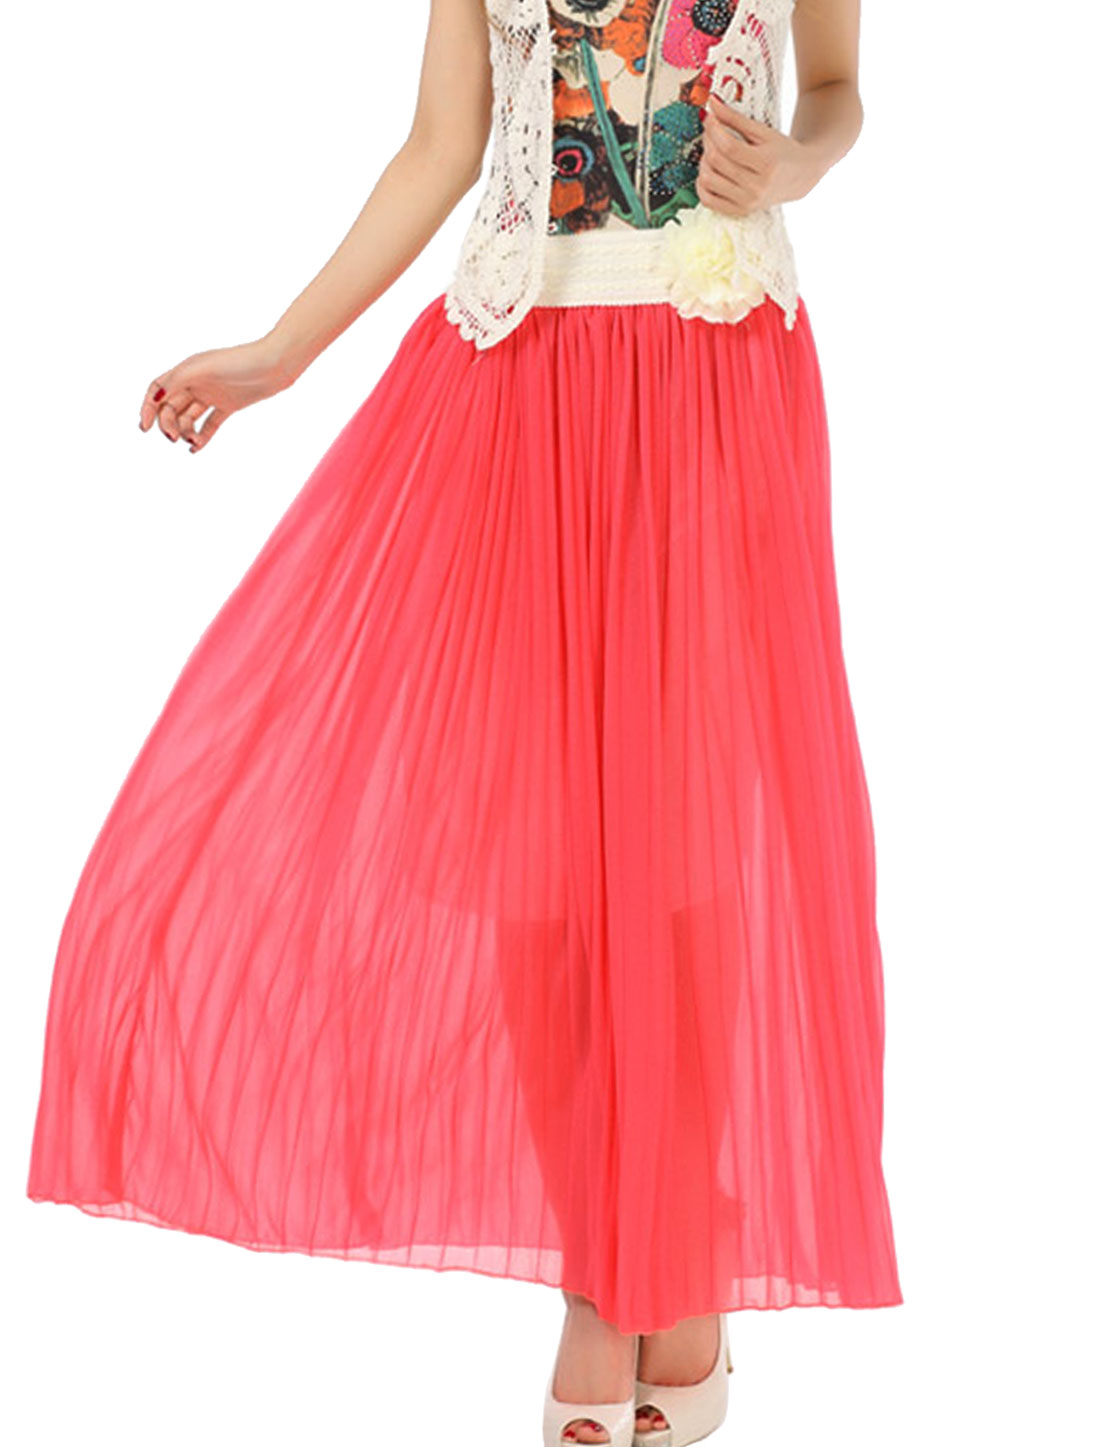 Lady Pleated Removable Flower Decor Shiny Lining Skirt Watermelon Red S